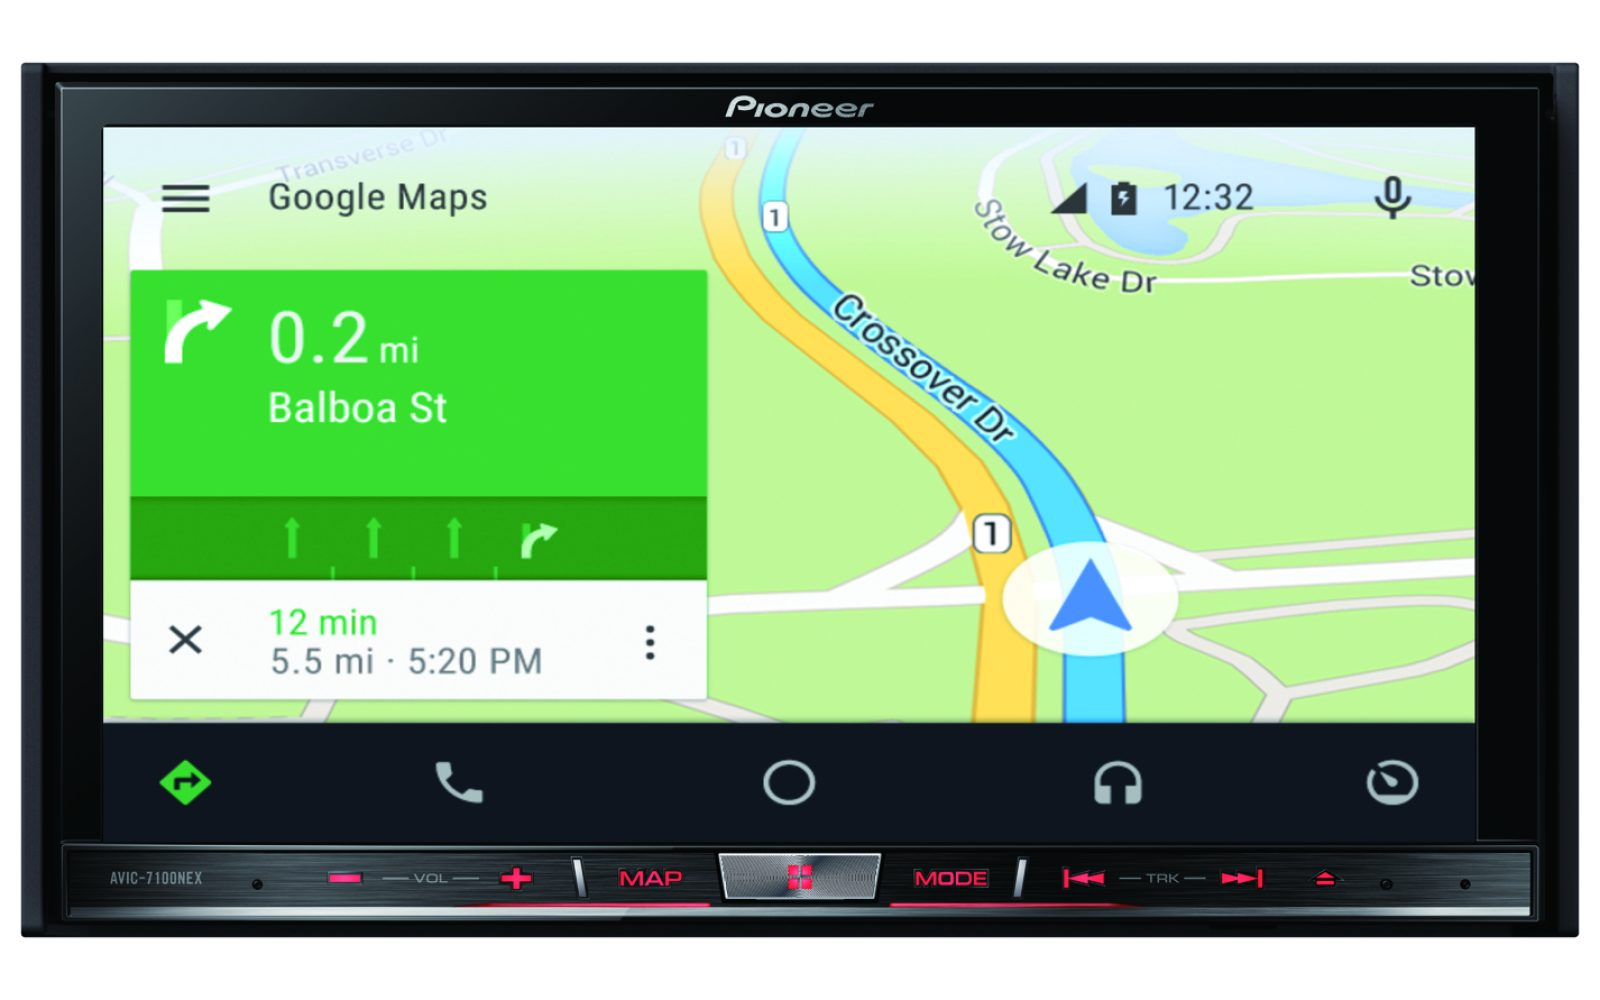 Android Auto app arrives alongside Pioneer hardware in US